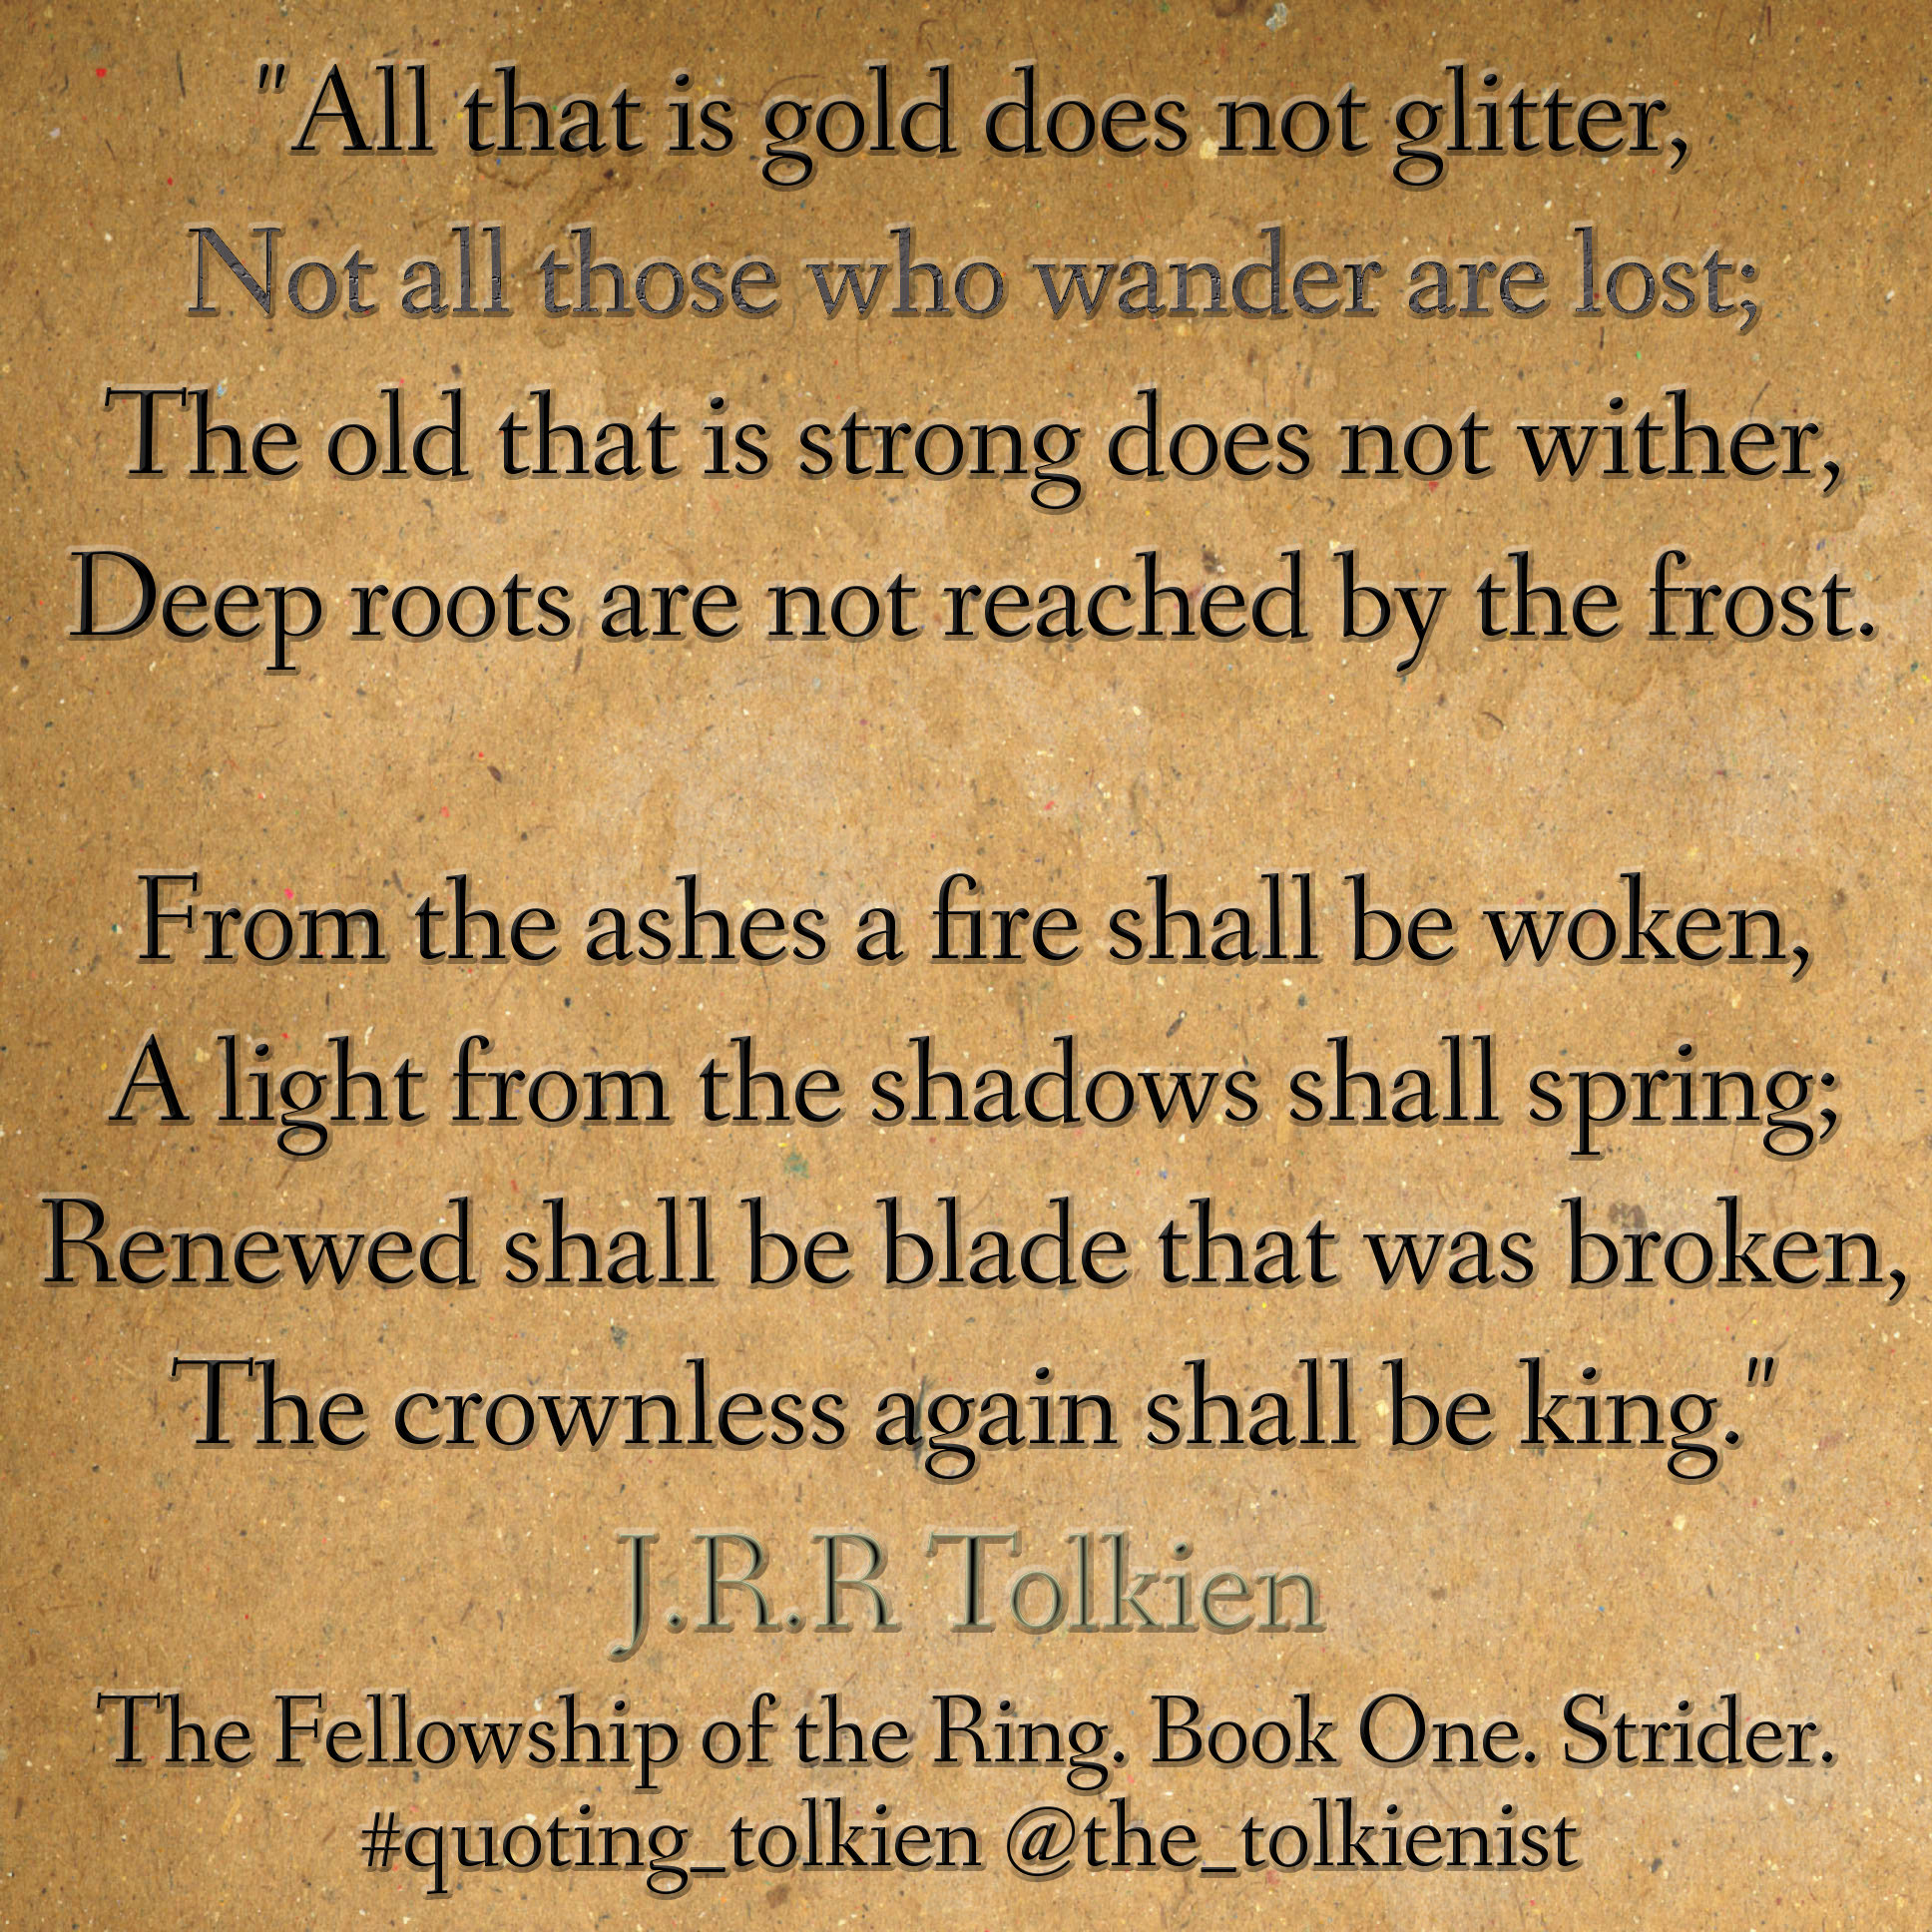 tolkien poems jrr tolkien quotes that is gold quotesgram